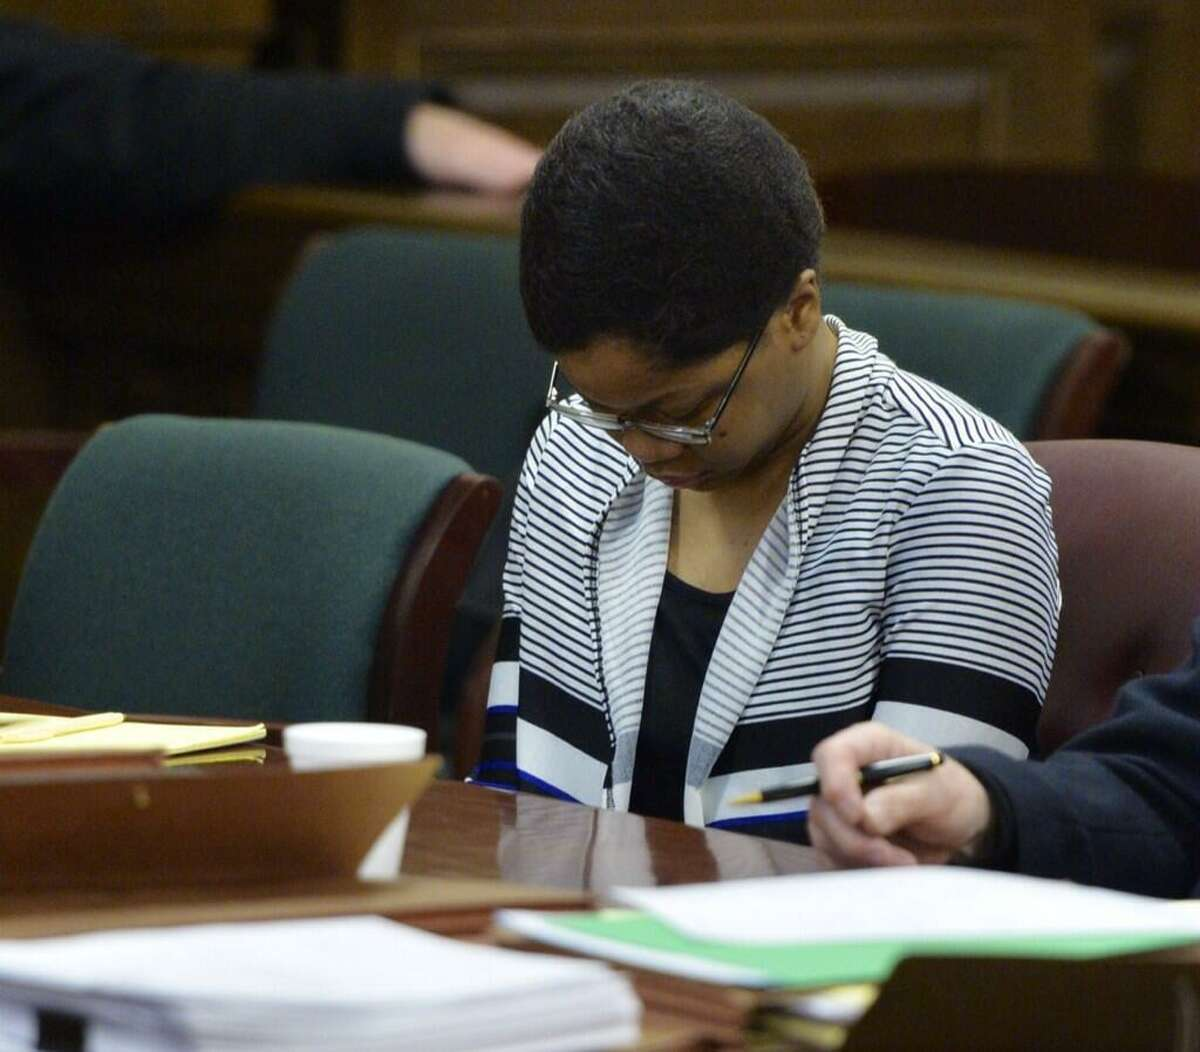 Trinity Copeland, 18, looks down as opening arguments get underway Wednesday at her second-degree murder trial in Rensselaer County Court. Copeland is accused of killing her father. (Skip Dickstein / Times Union)